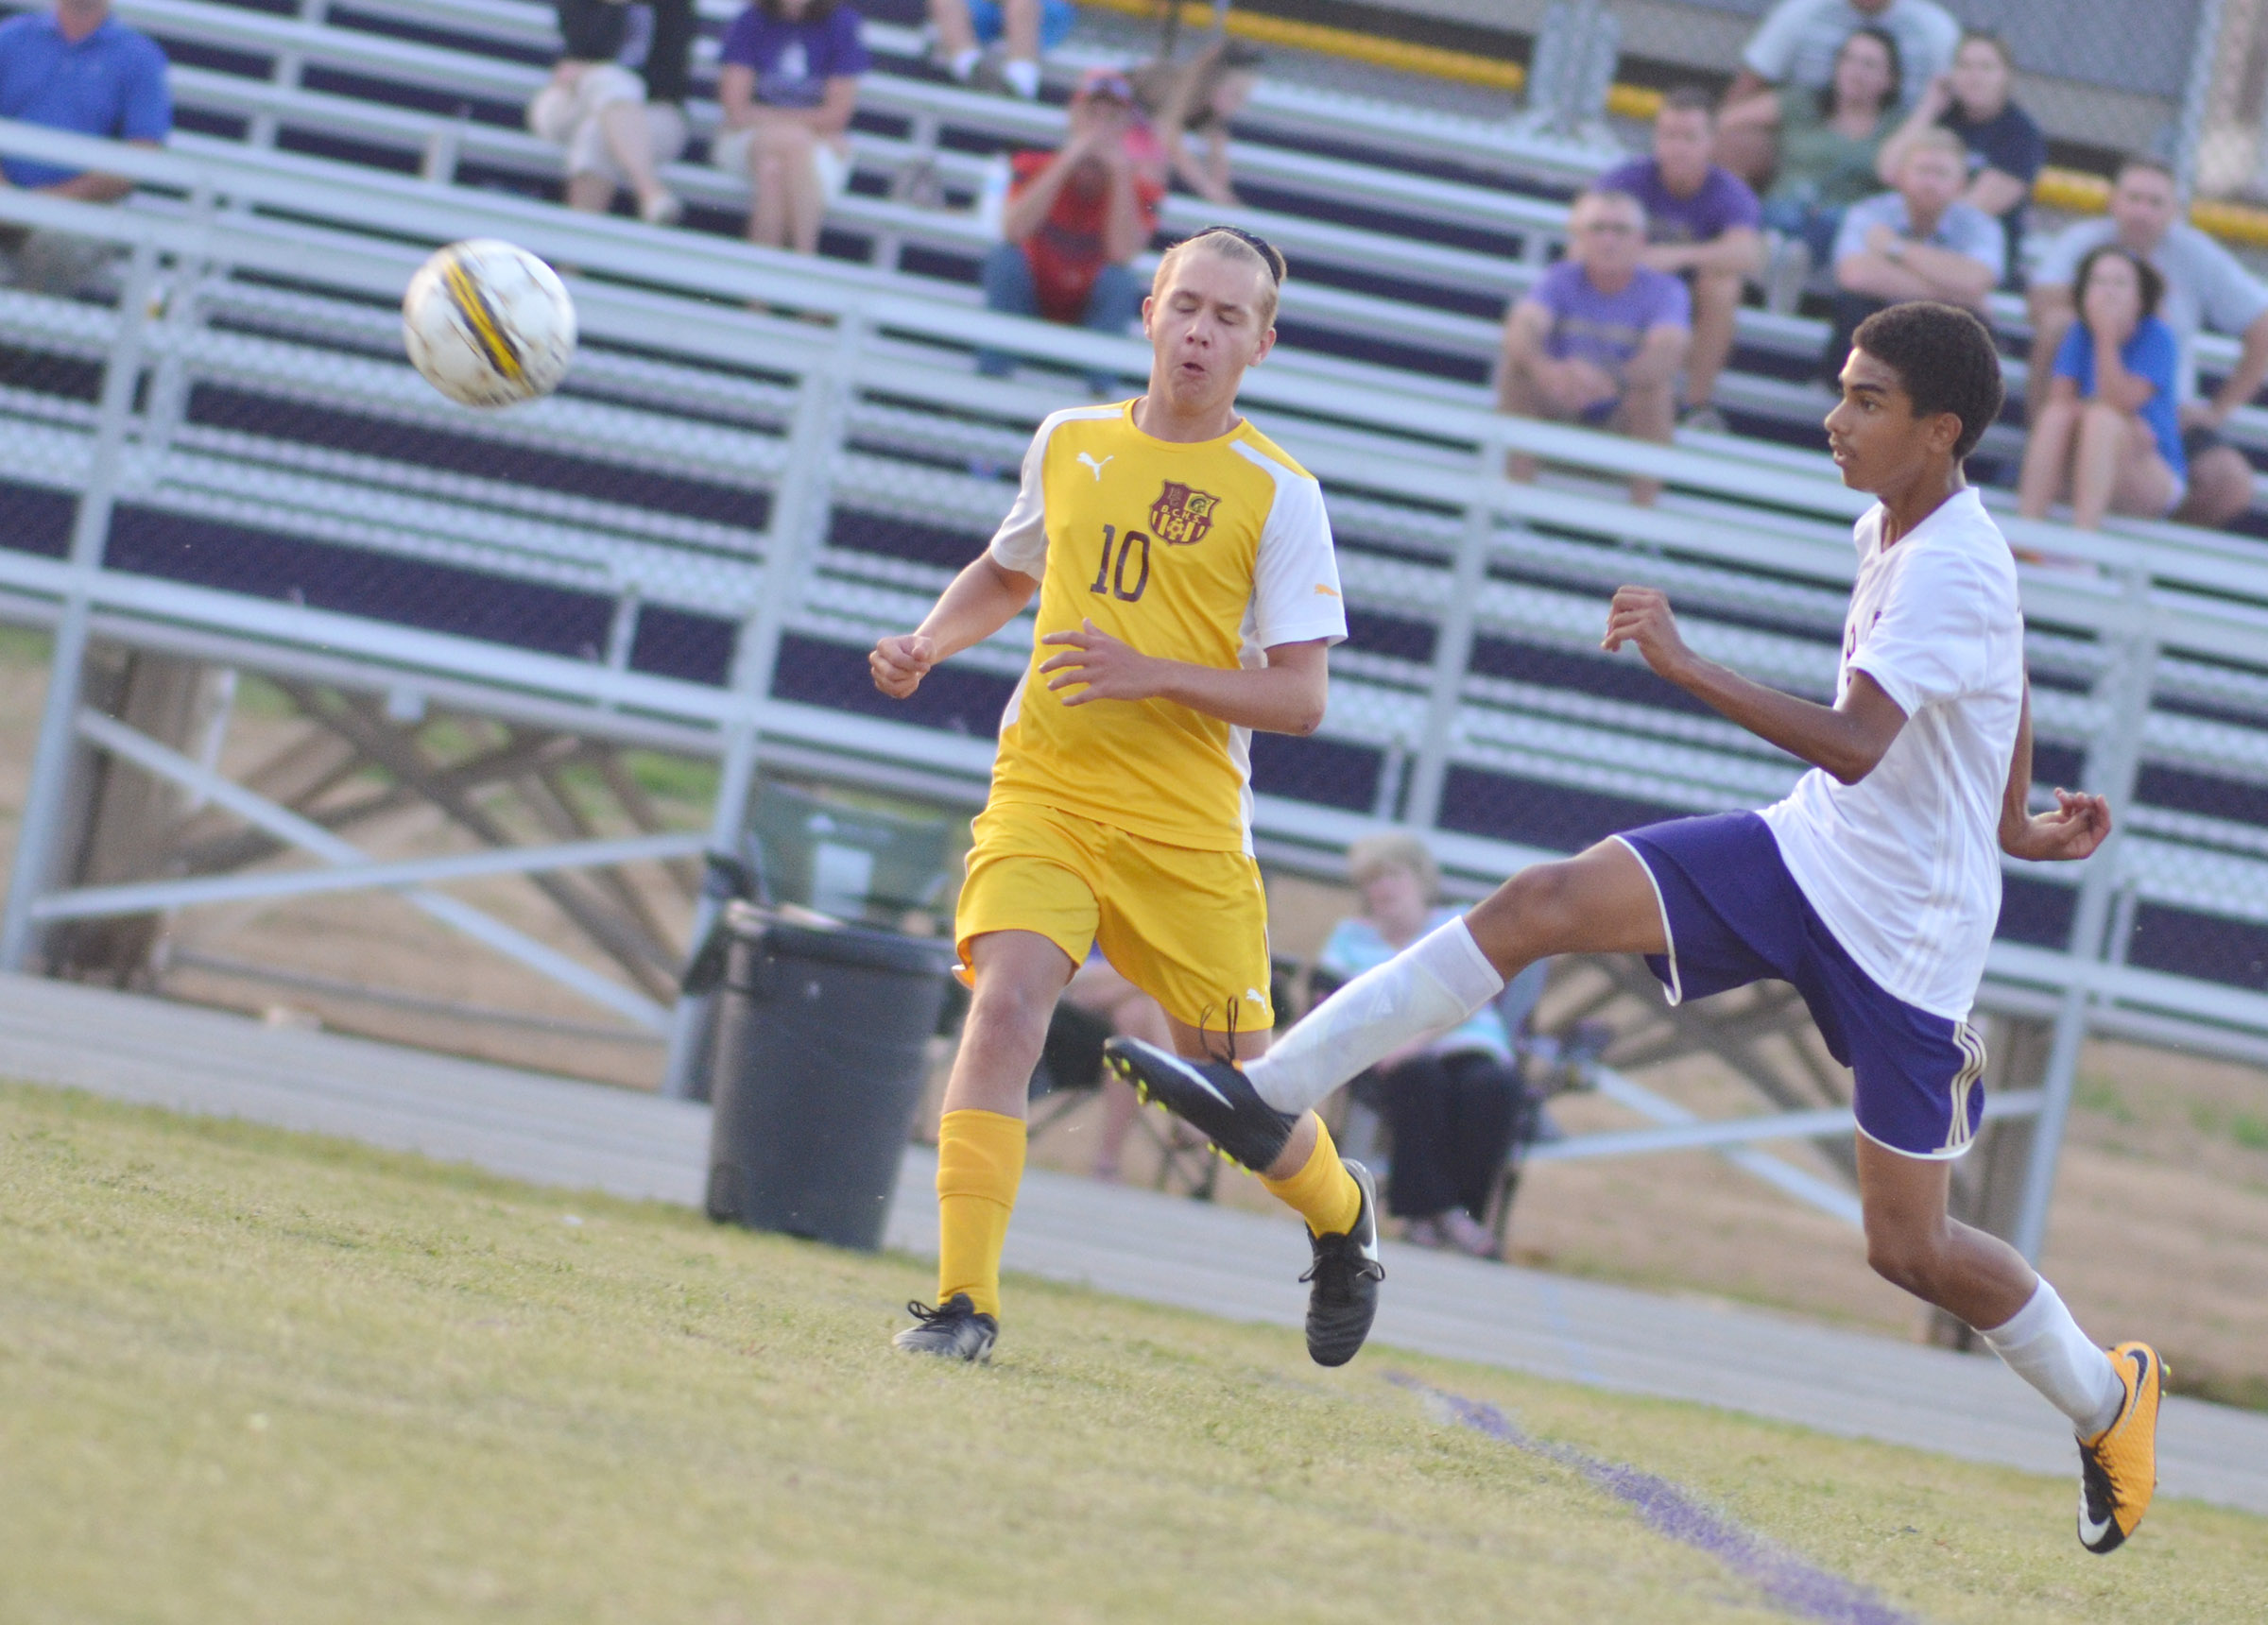 CHS sophomore David Silva kicks the ball.